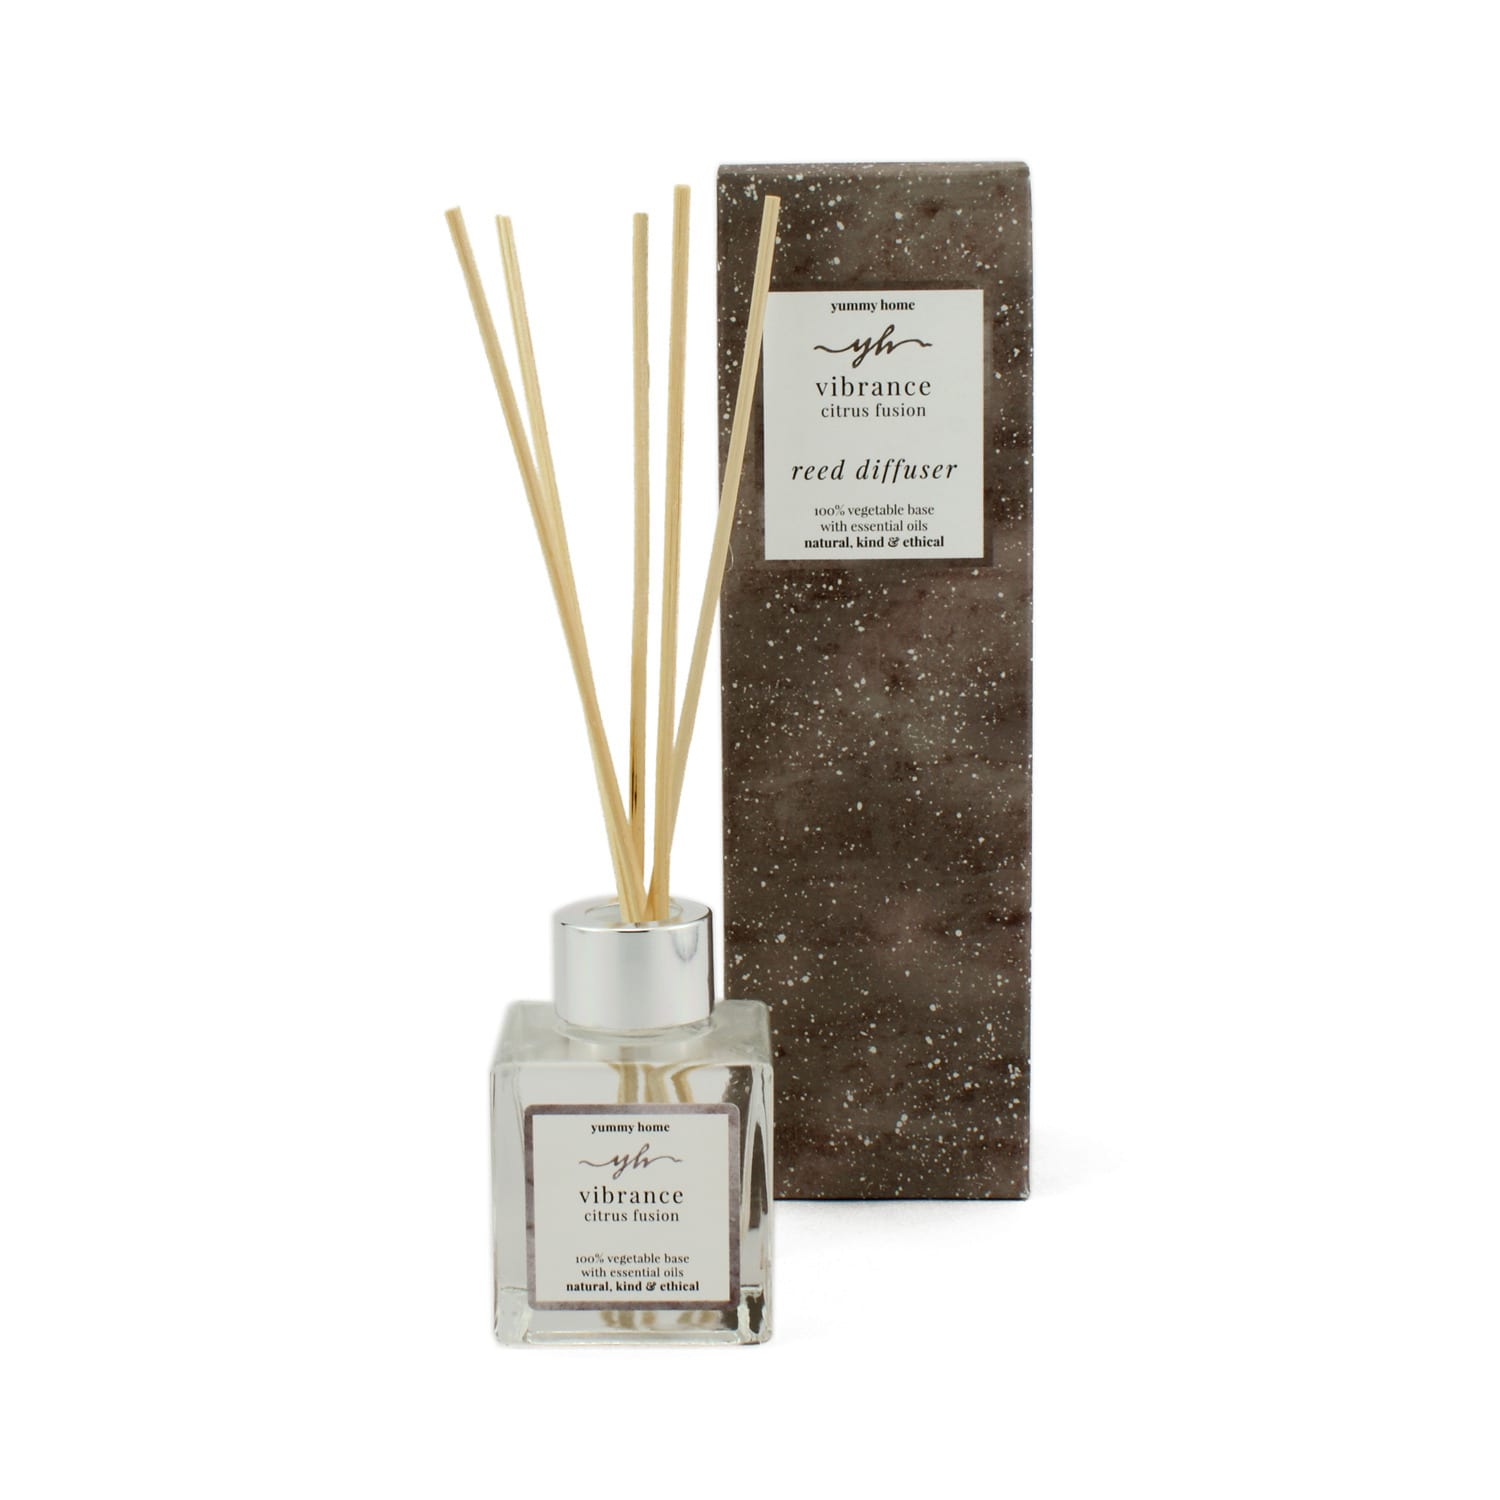 Yummy Home - Vibrance Citrus Fusion Reed Diffuser 100ml